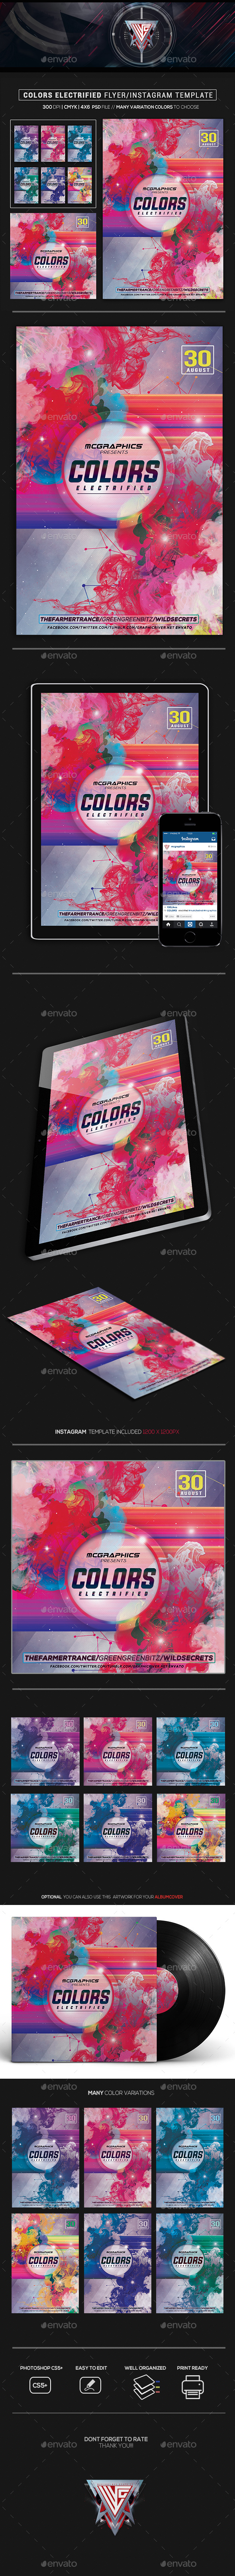 Colors Electrified Flyer/Instagram Template - Flyers Print Templates